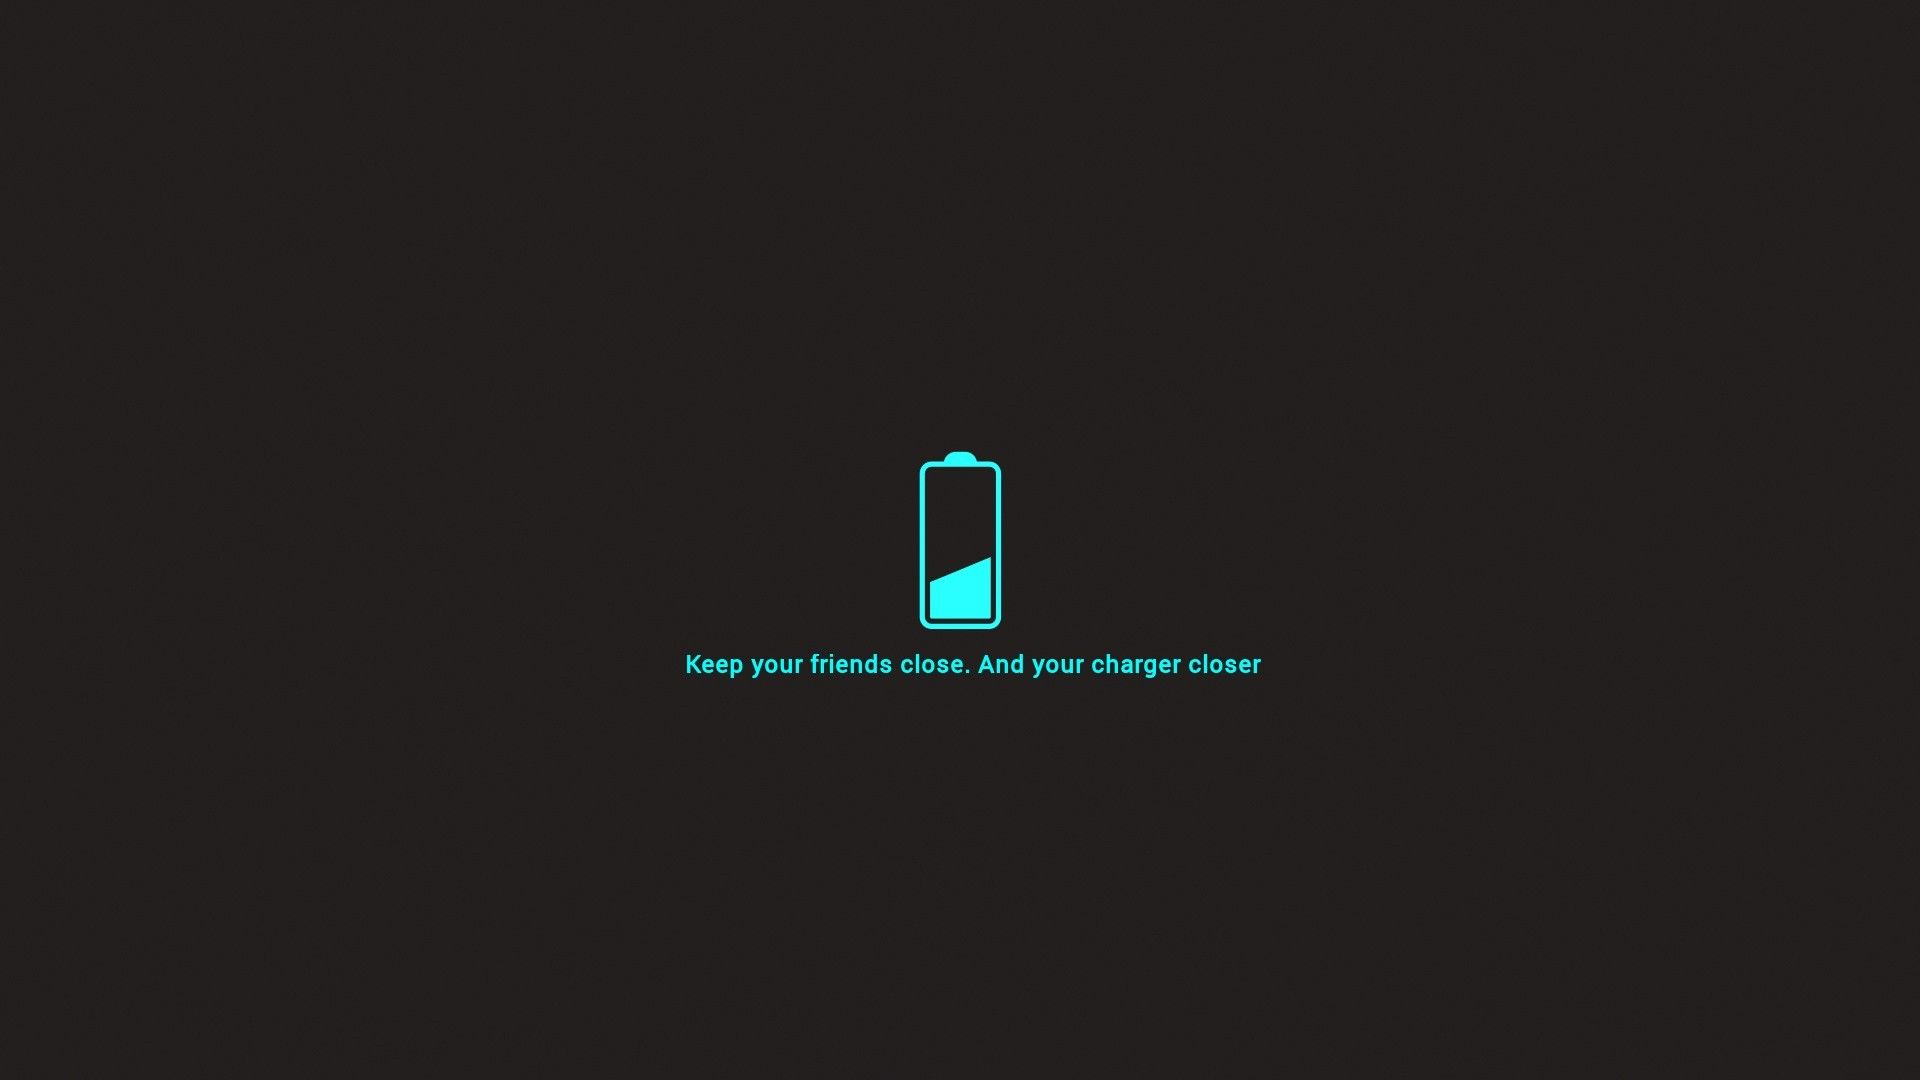 Minimalistic Dark Funny Friends Charger Battery Philosophy Neon Blue Wallpaper 2939509 Wallbase Simple Wallpapers Minimalist Decor Minimalist Home Decor